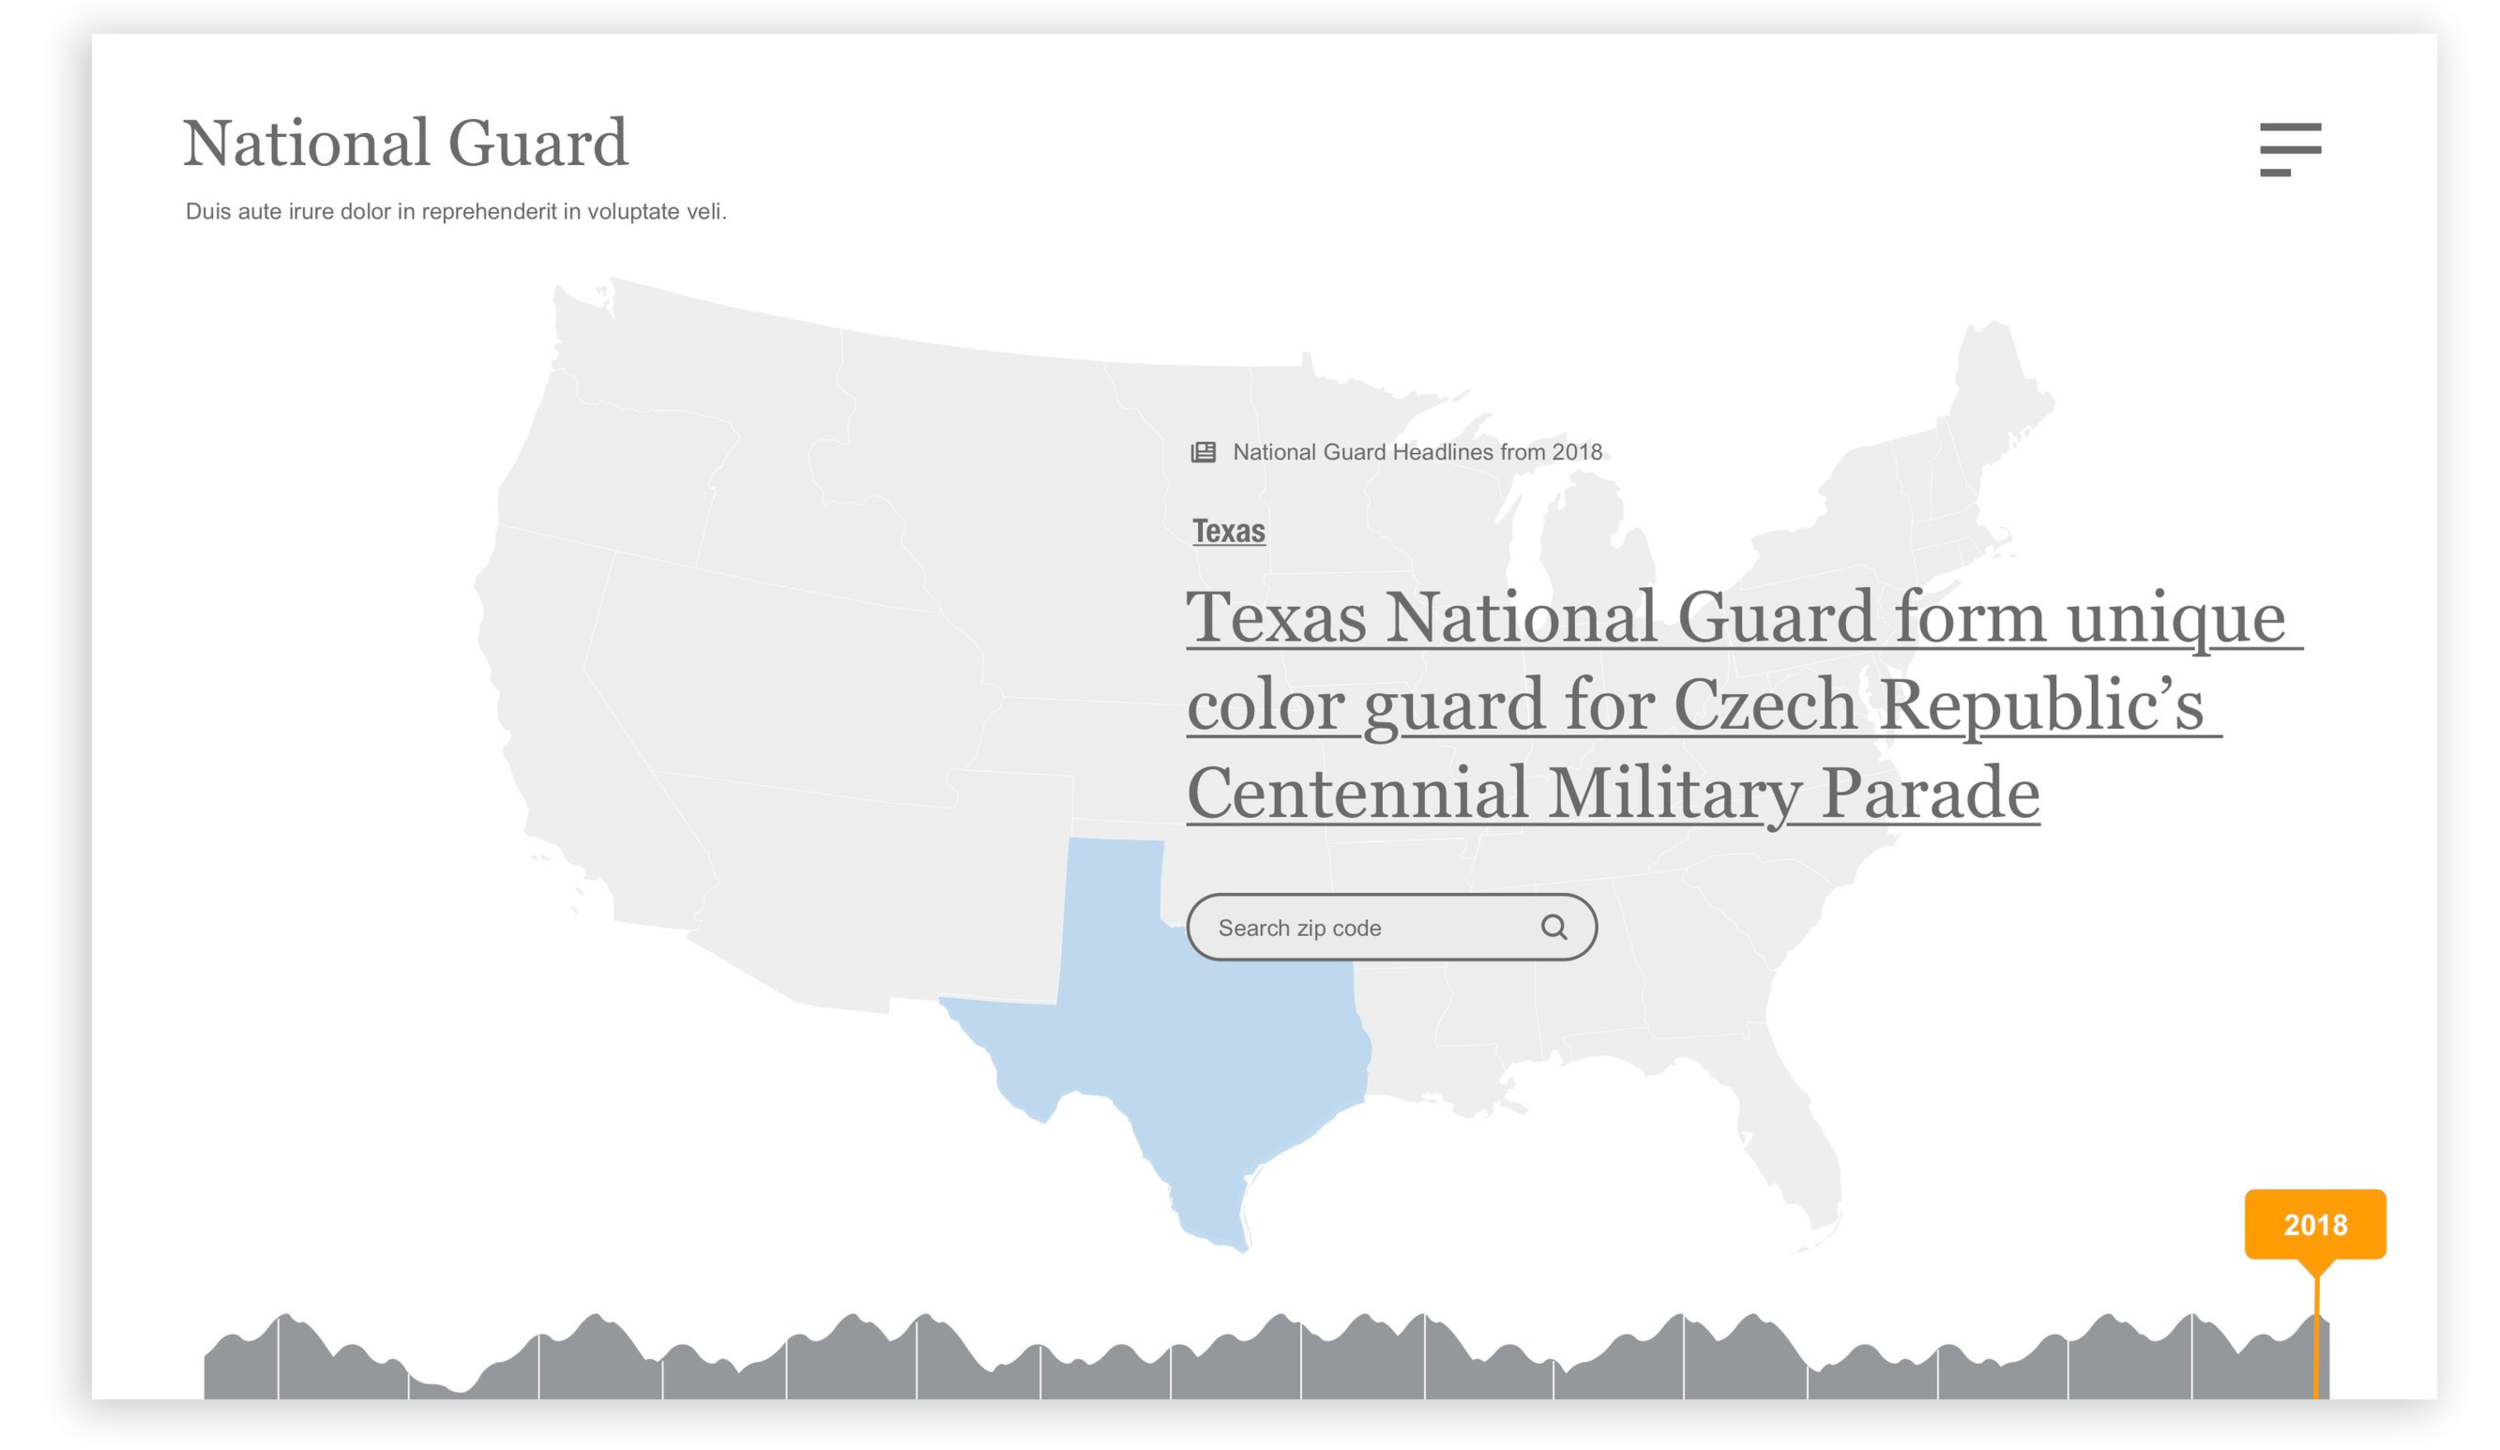 US_ARMY-NationGuard-wireframes2.png